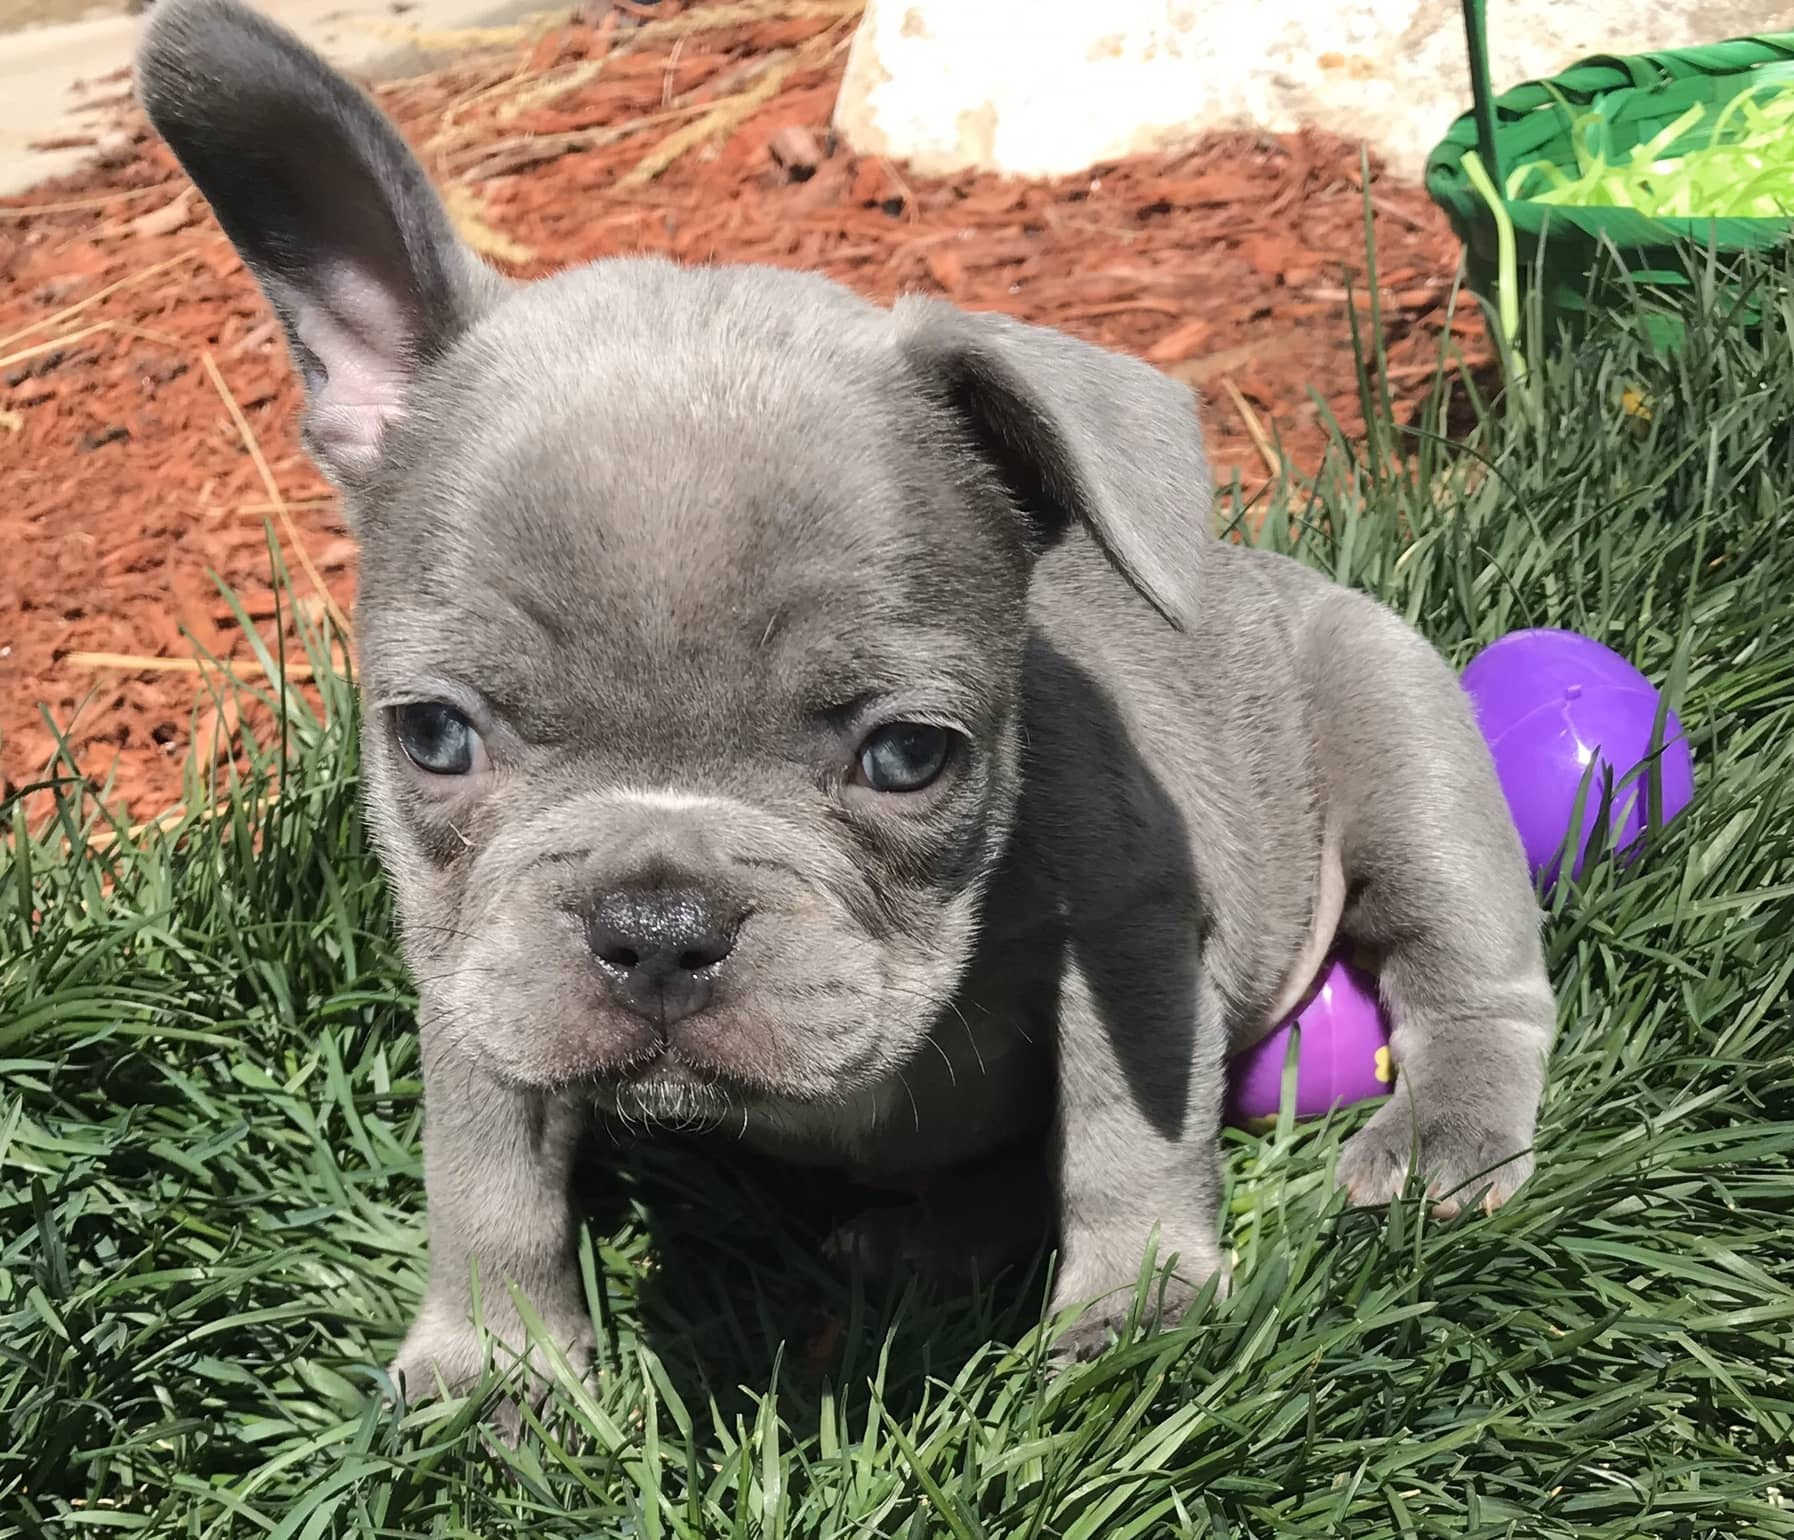 What is a Lilac French bulldog - Image By thefrenchbulldog